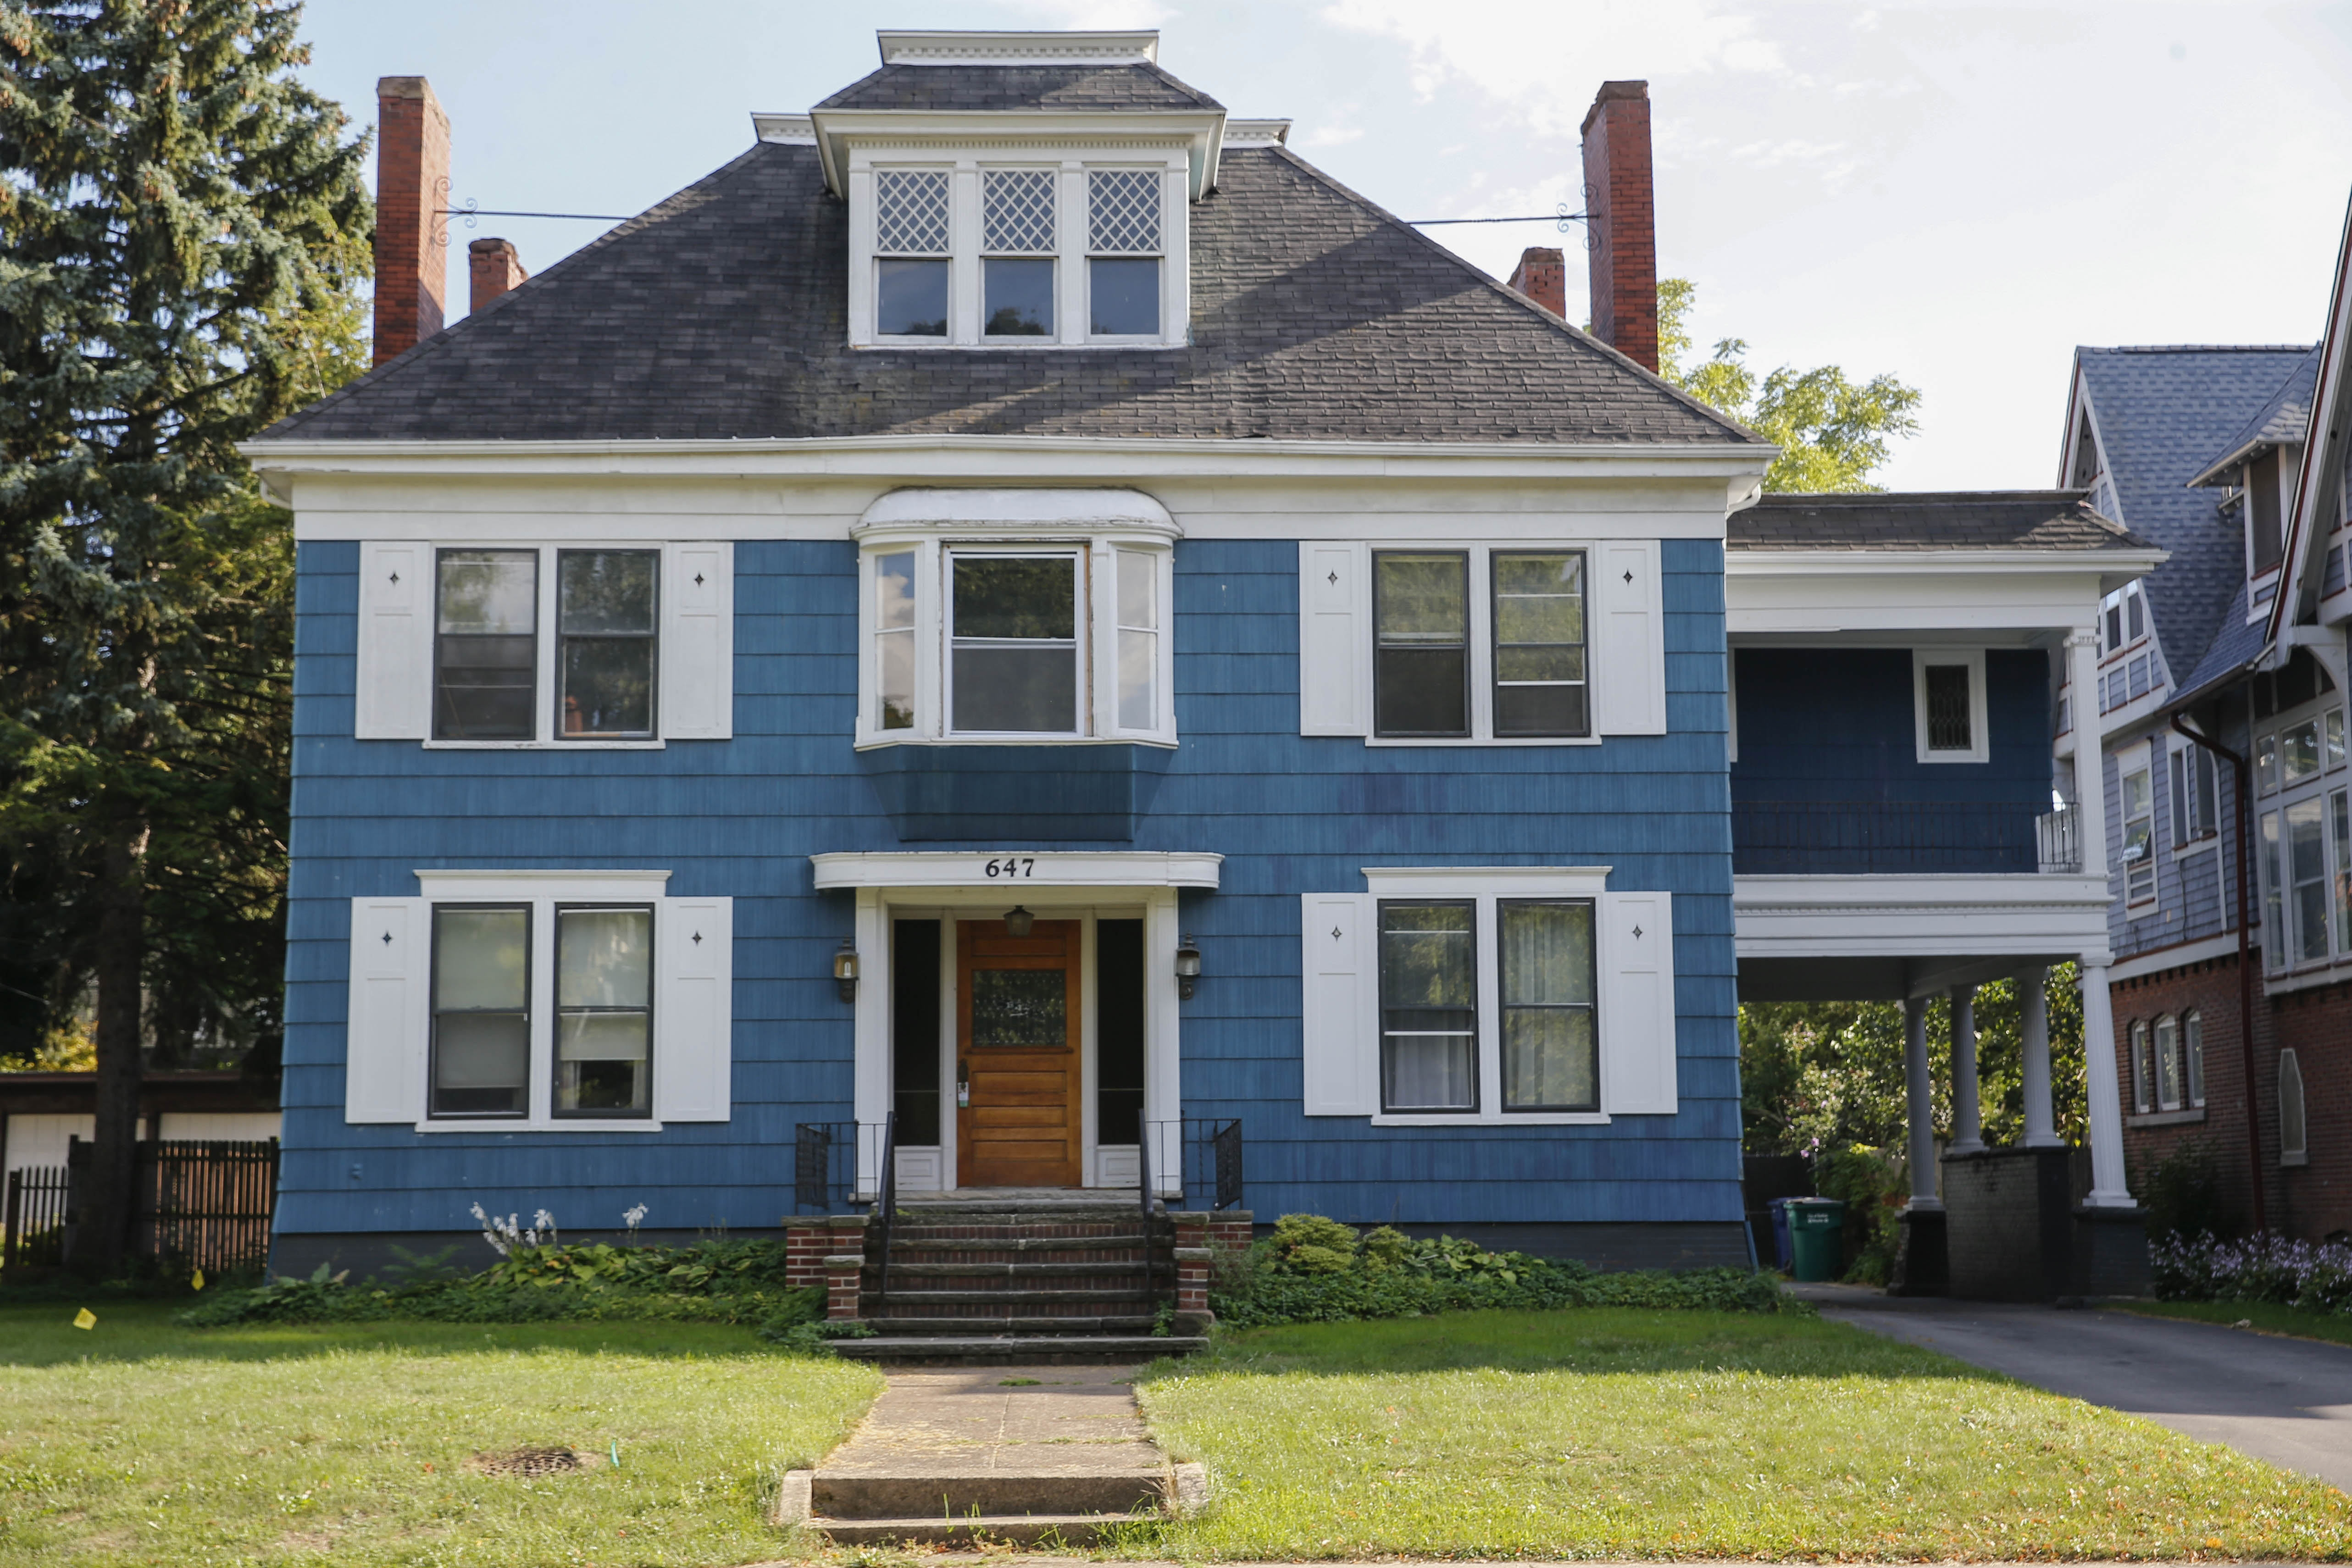 The owners say they bought the house at 647 Lafayette Ave. with plans to renovate, but found it was in such bad shape they now want to demolish and rebuild. (Derek Gee/Buffalo News)